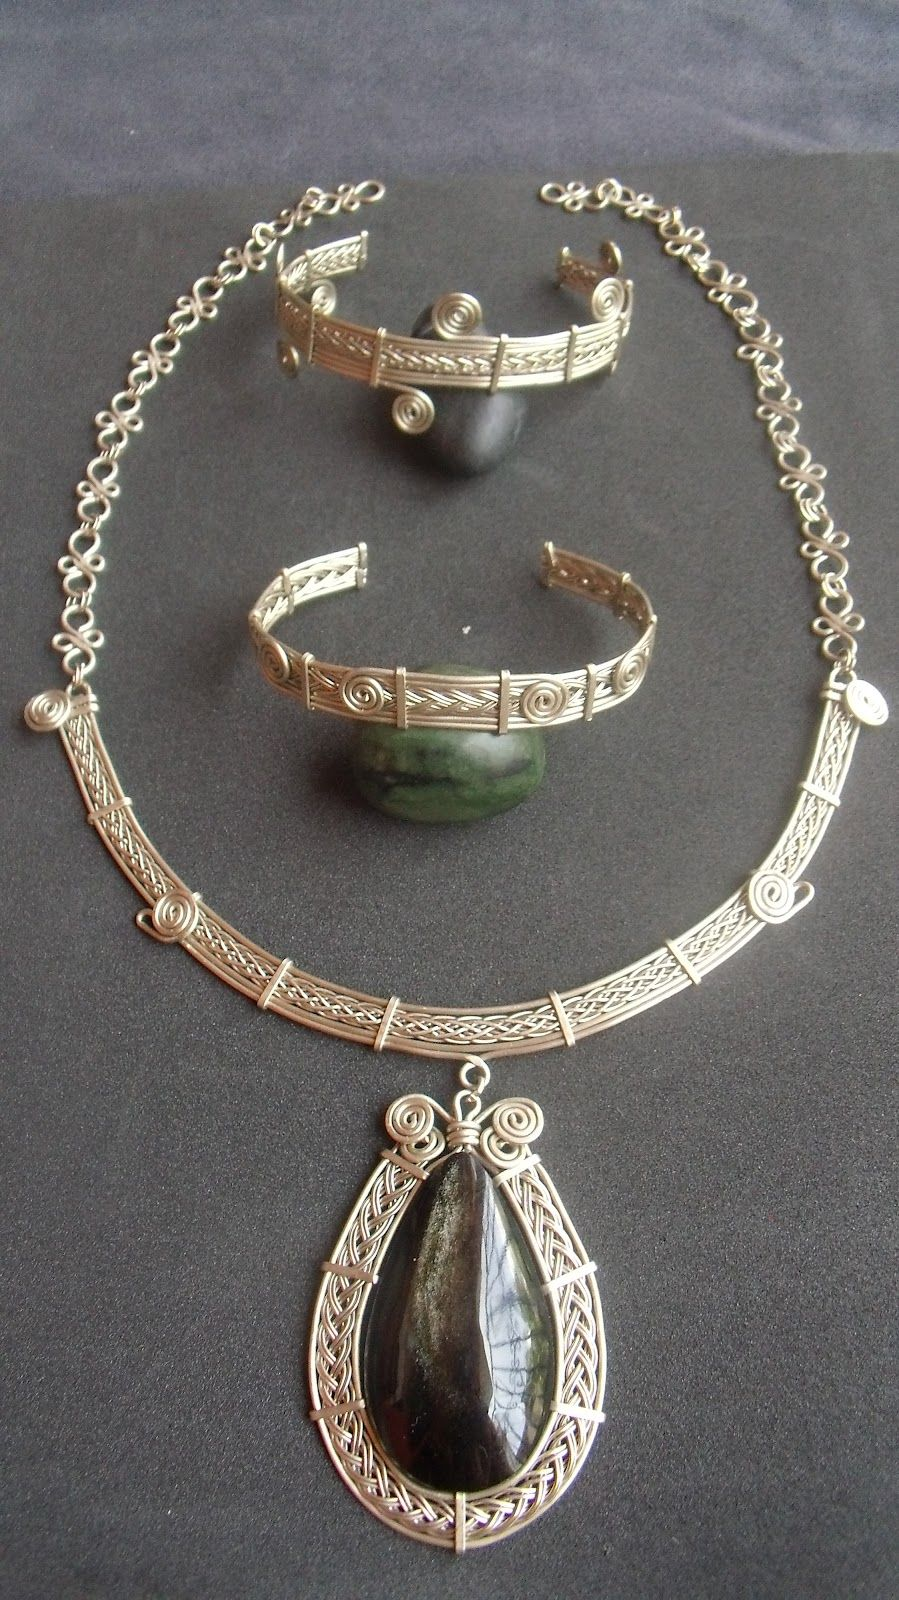 Pin by Wendy Slattery on Wire wrapped jewelry   Pinterest   Wire ...